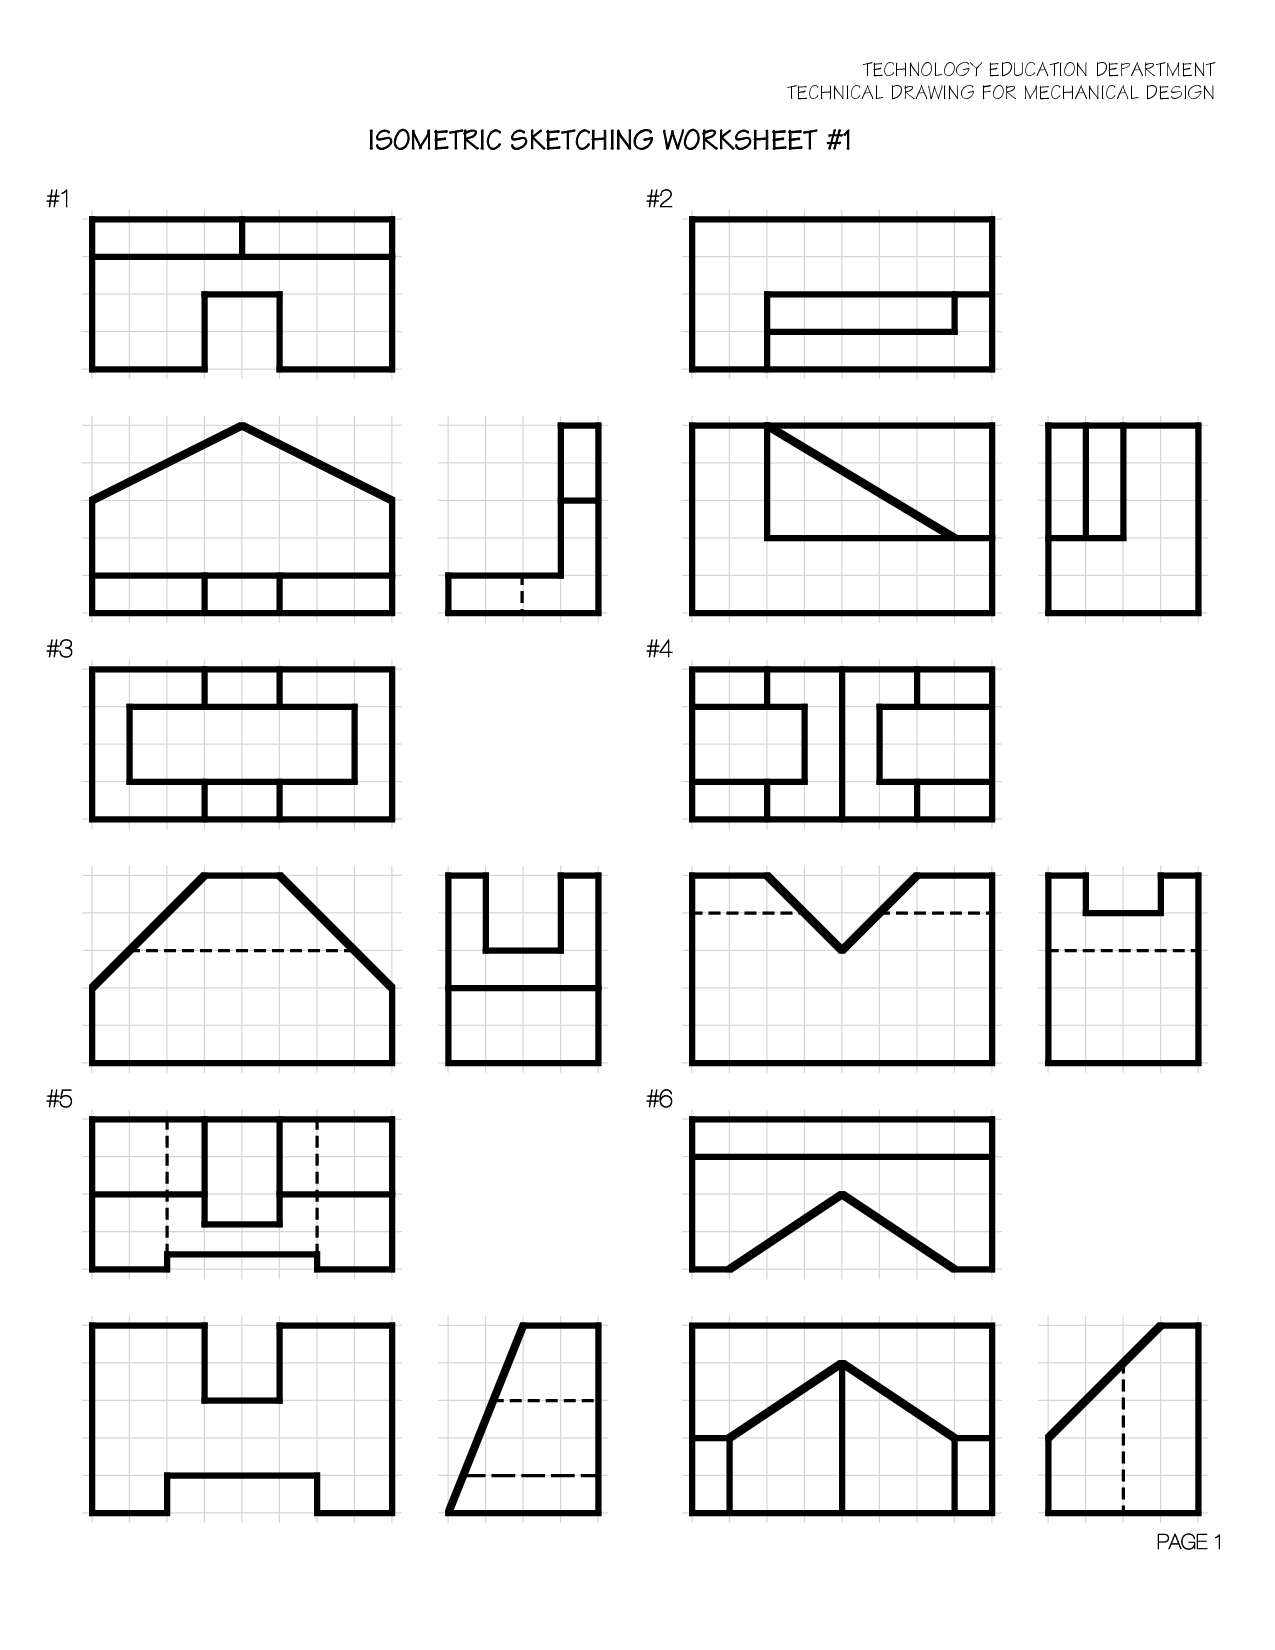 Worksheet Isometric Drawings Pictures   Vistas dibujo tecnico [ 1650 x 1275 Pixel ]